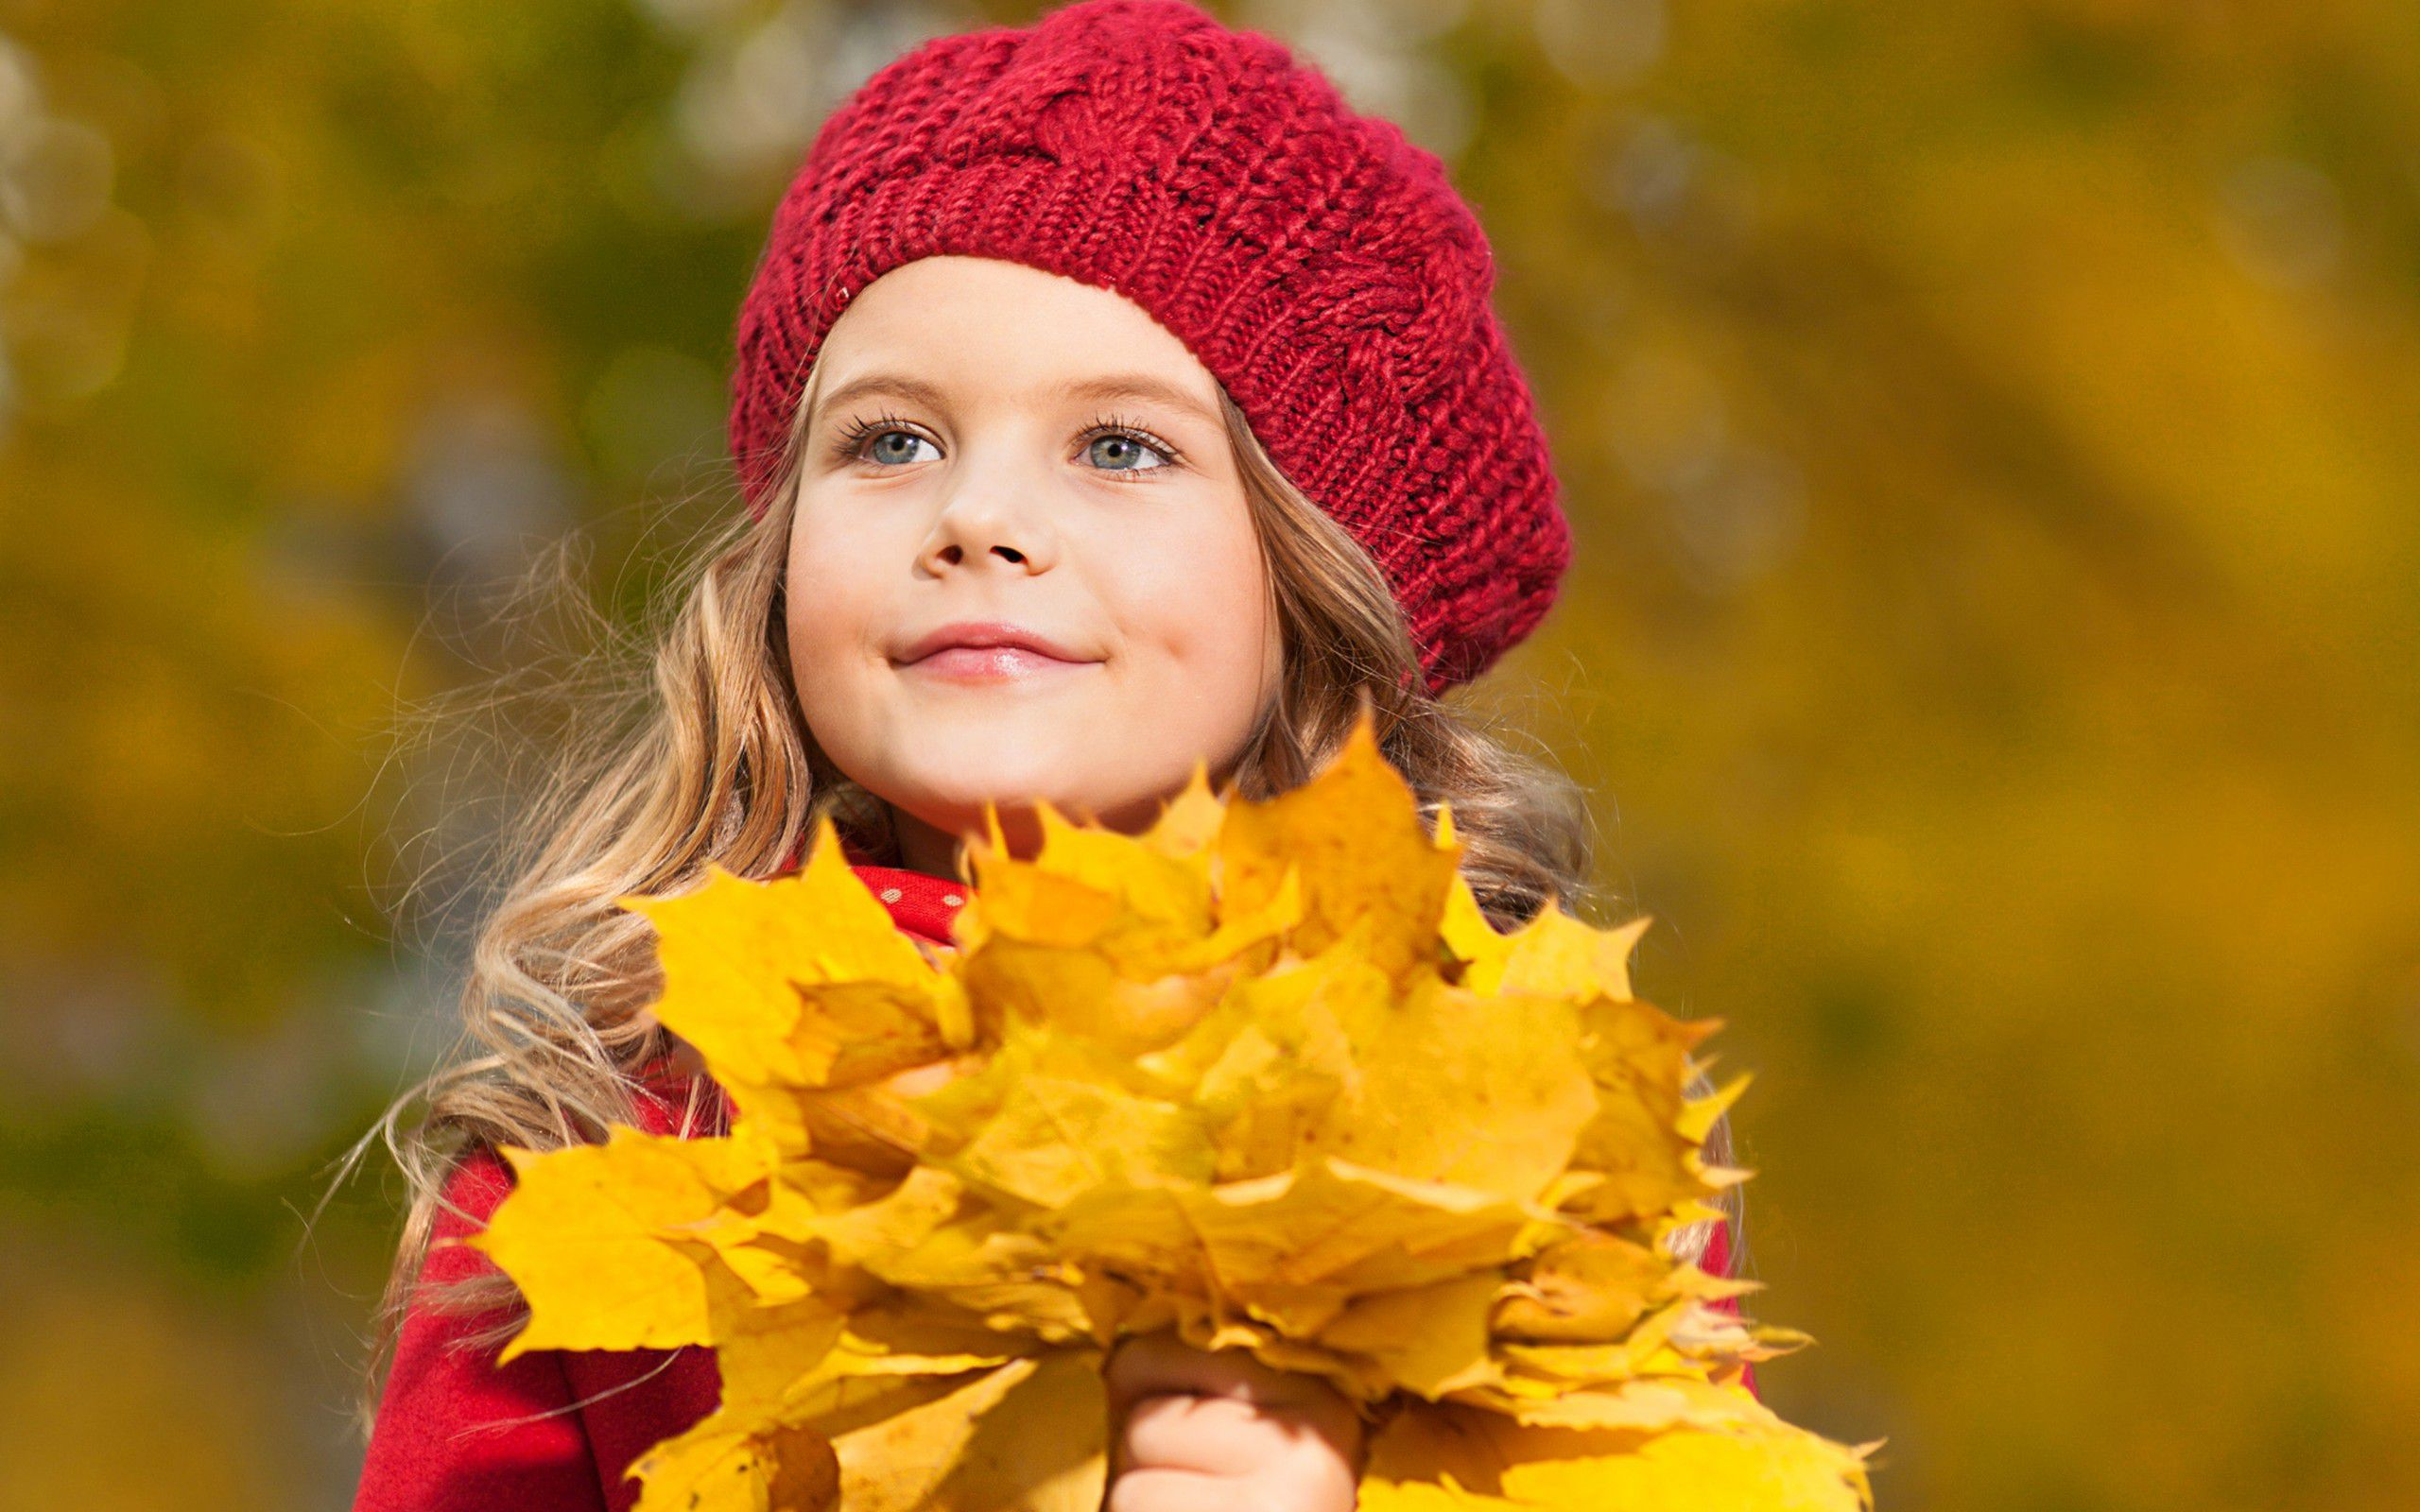 Cute Kids Autumn - Tierra Este | #62574